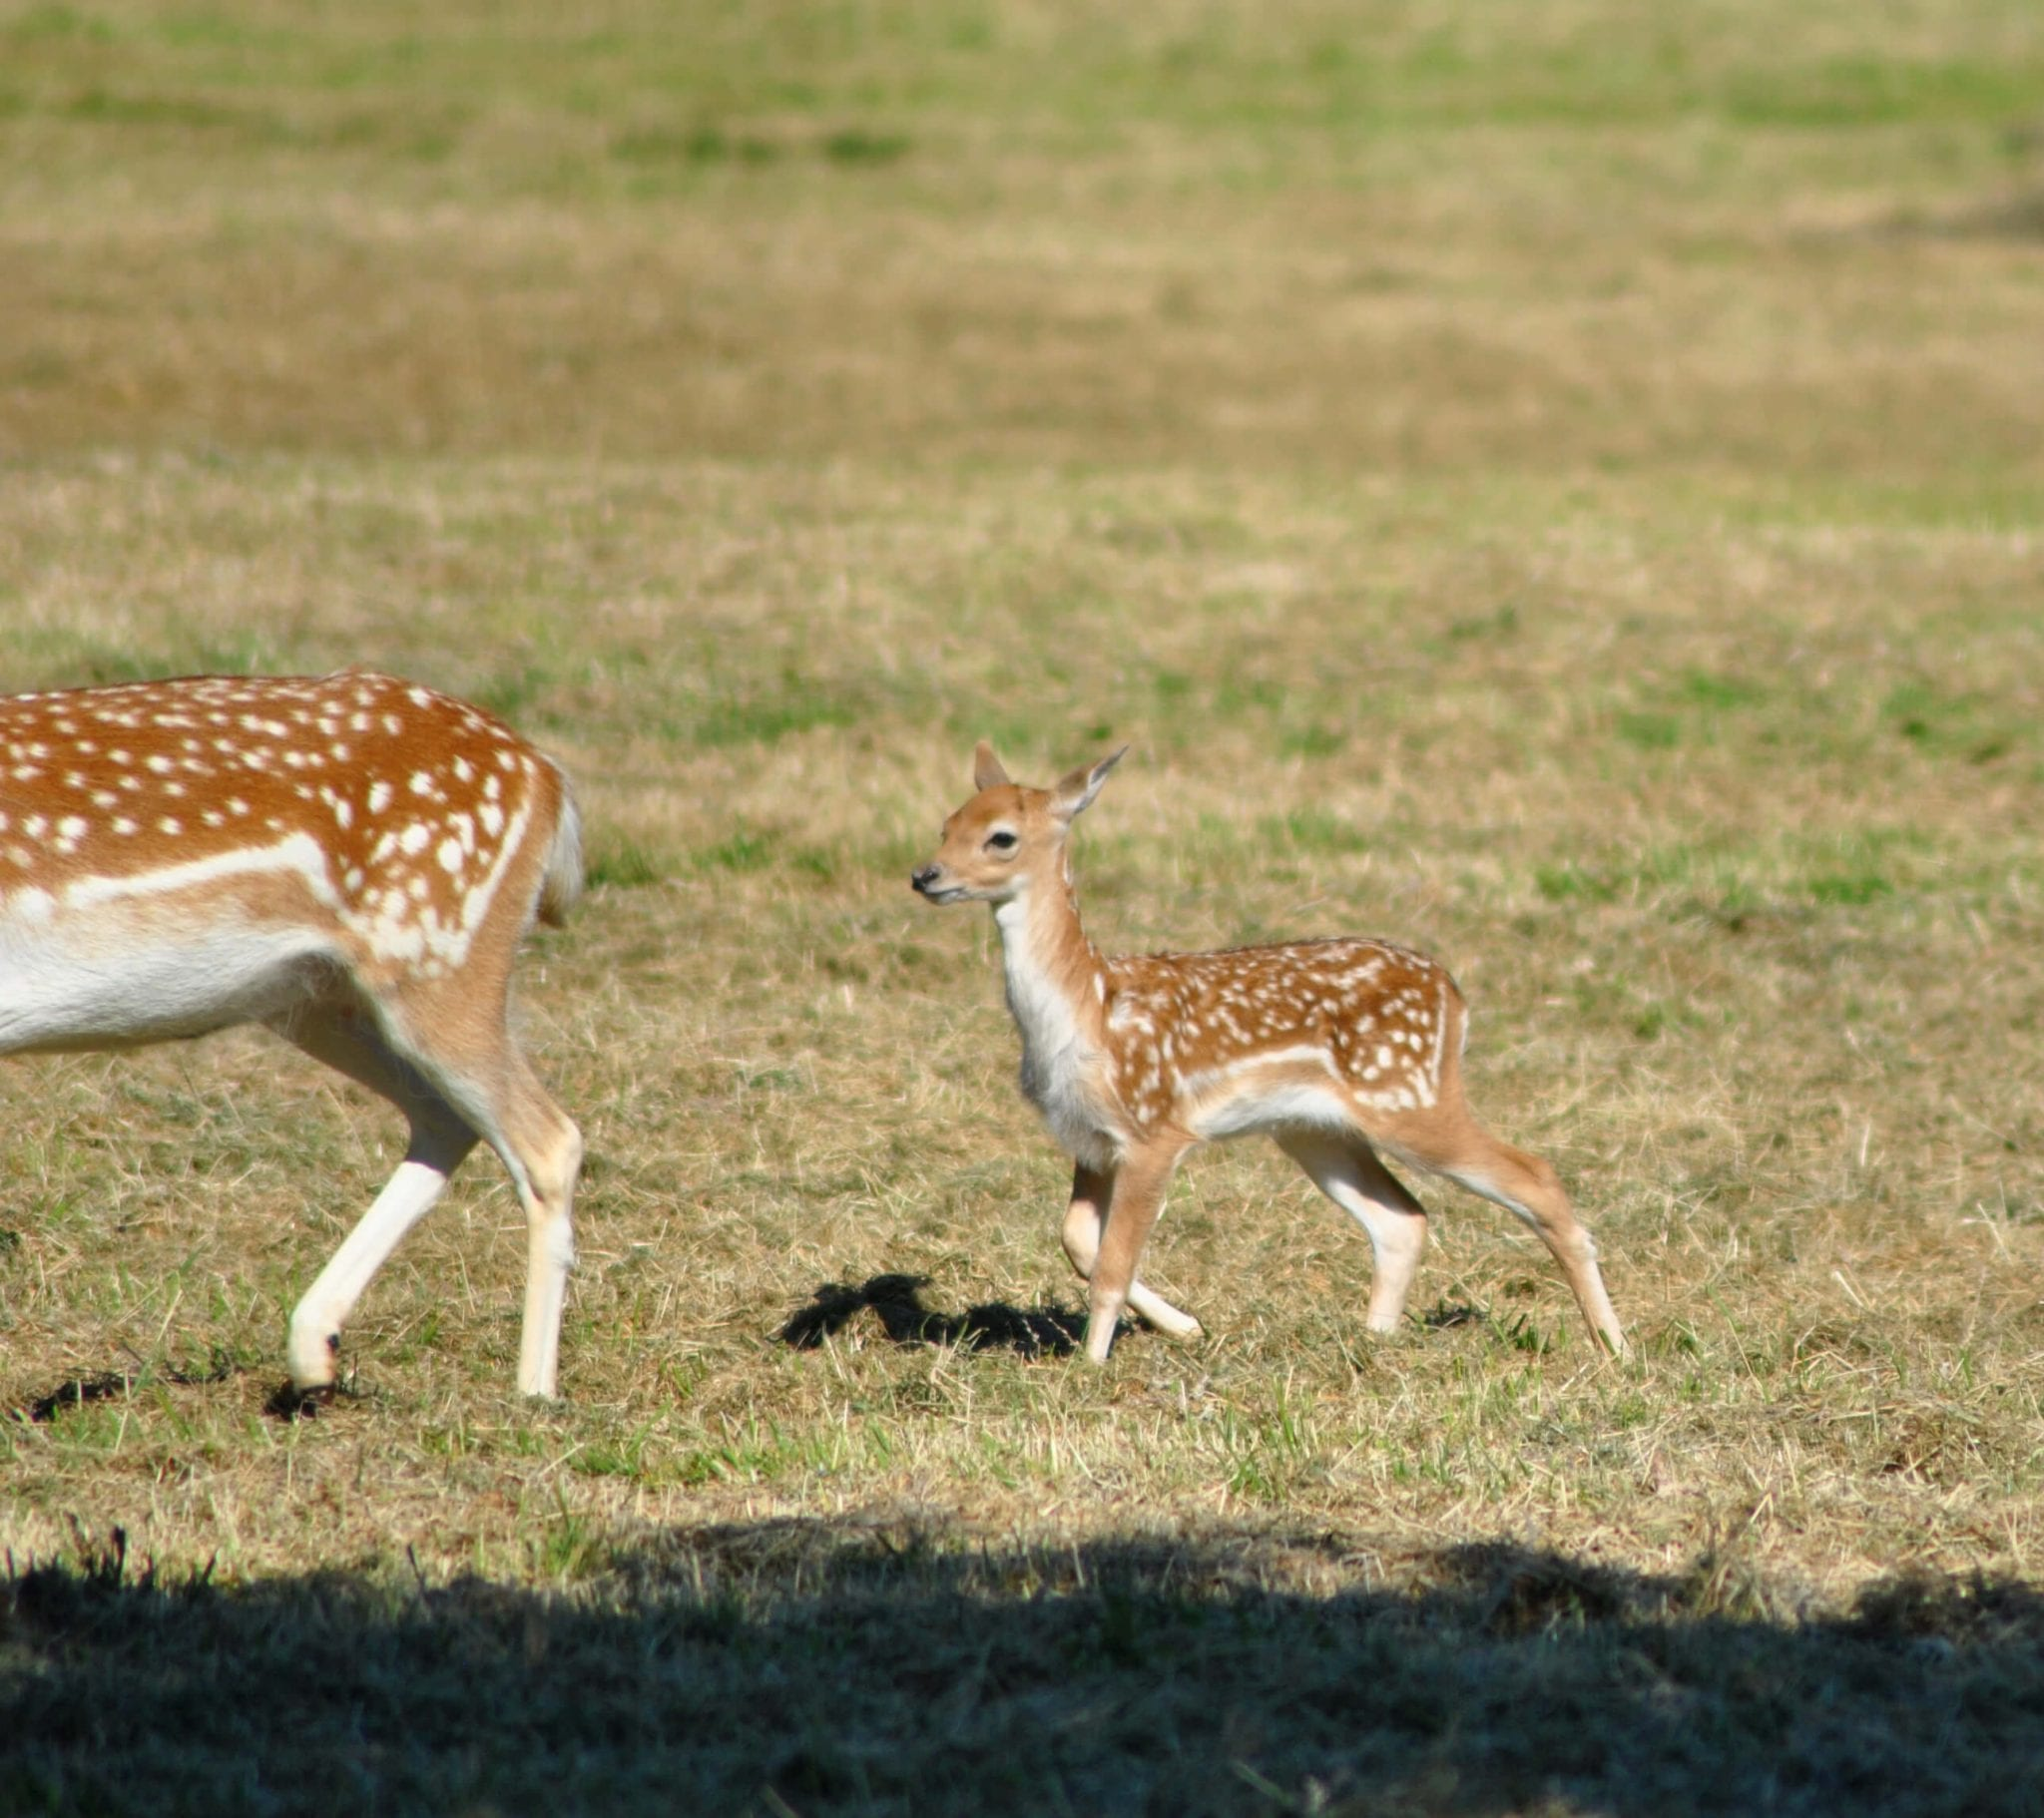 A deer fawn chasing after its mother at Woodlands Family Theme Park in Dartmouth